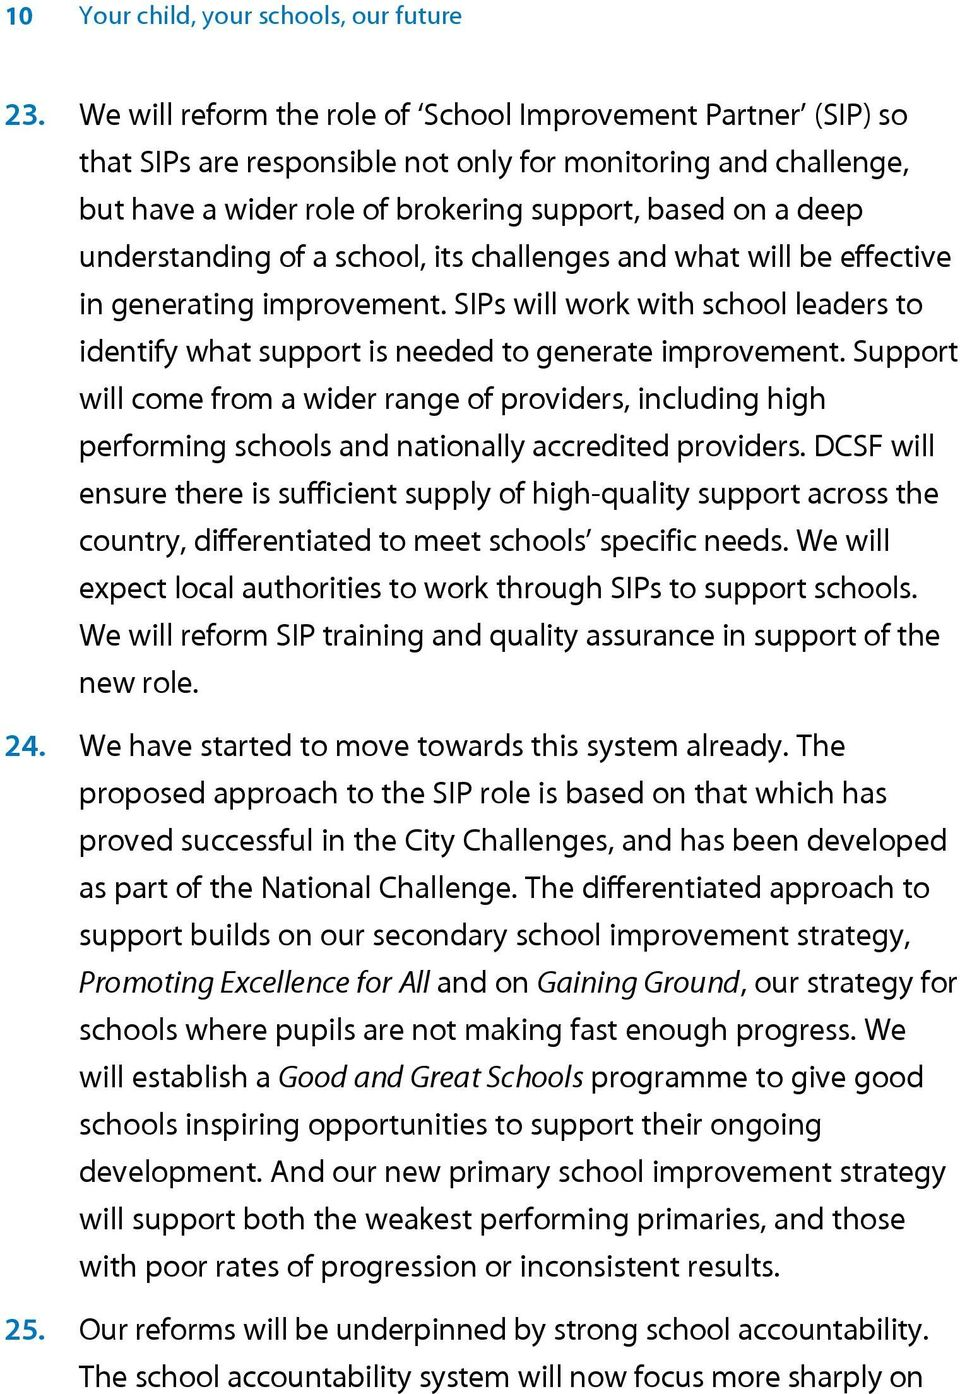 understanding of a school, its challenges and what will be effective in generating improvement. SIPs will work with school leaders to identify what support is needed to generate improvement.